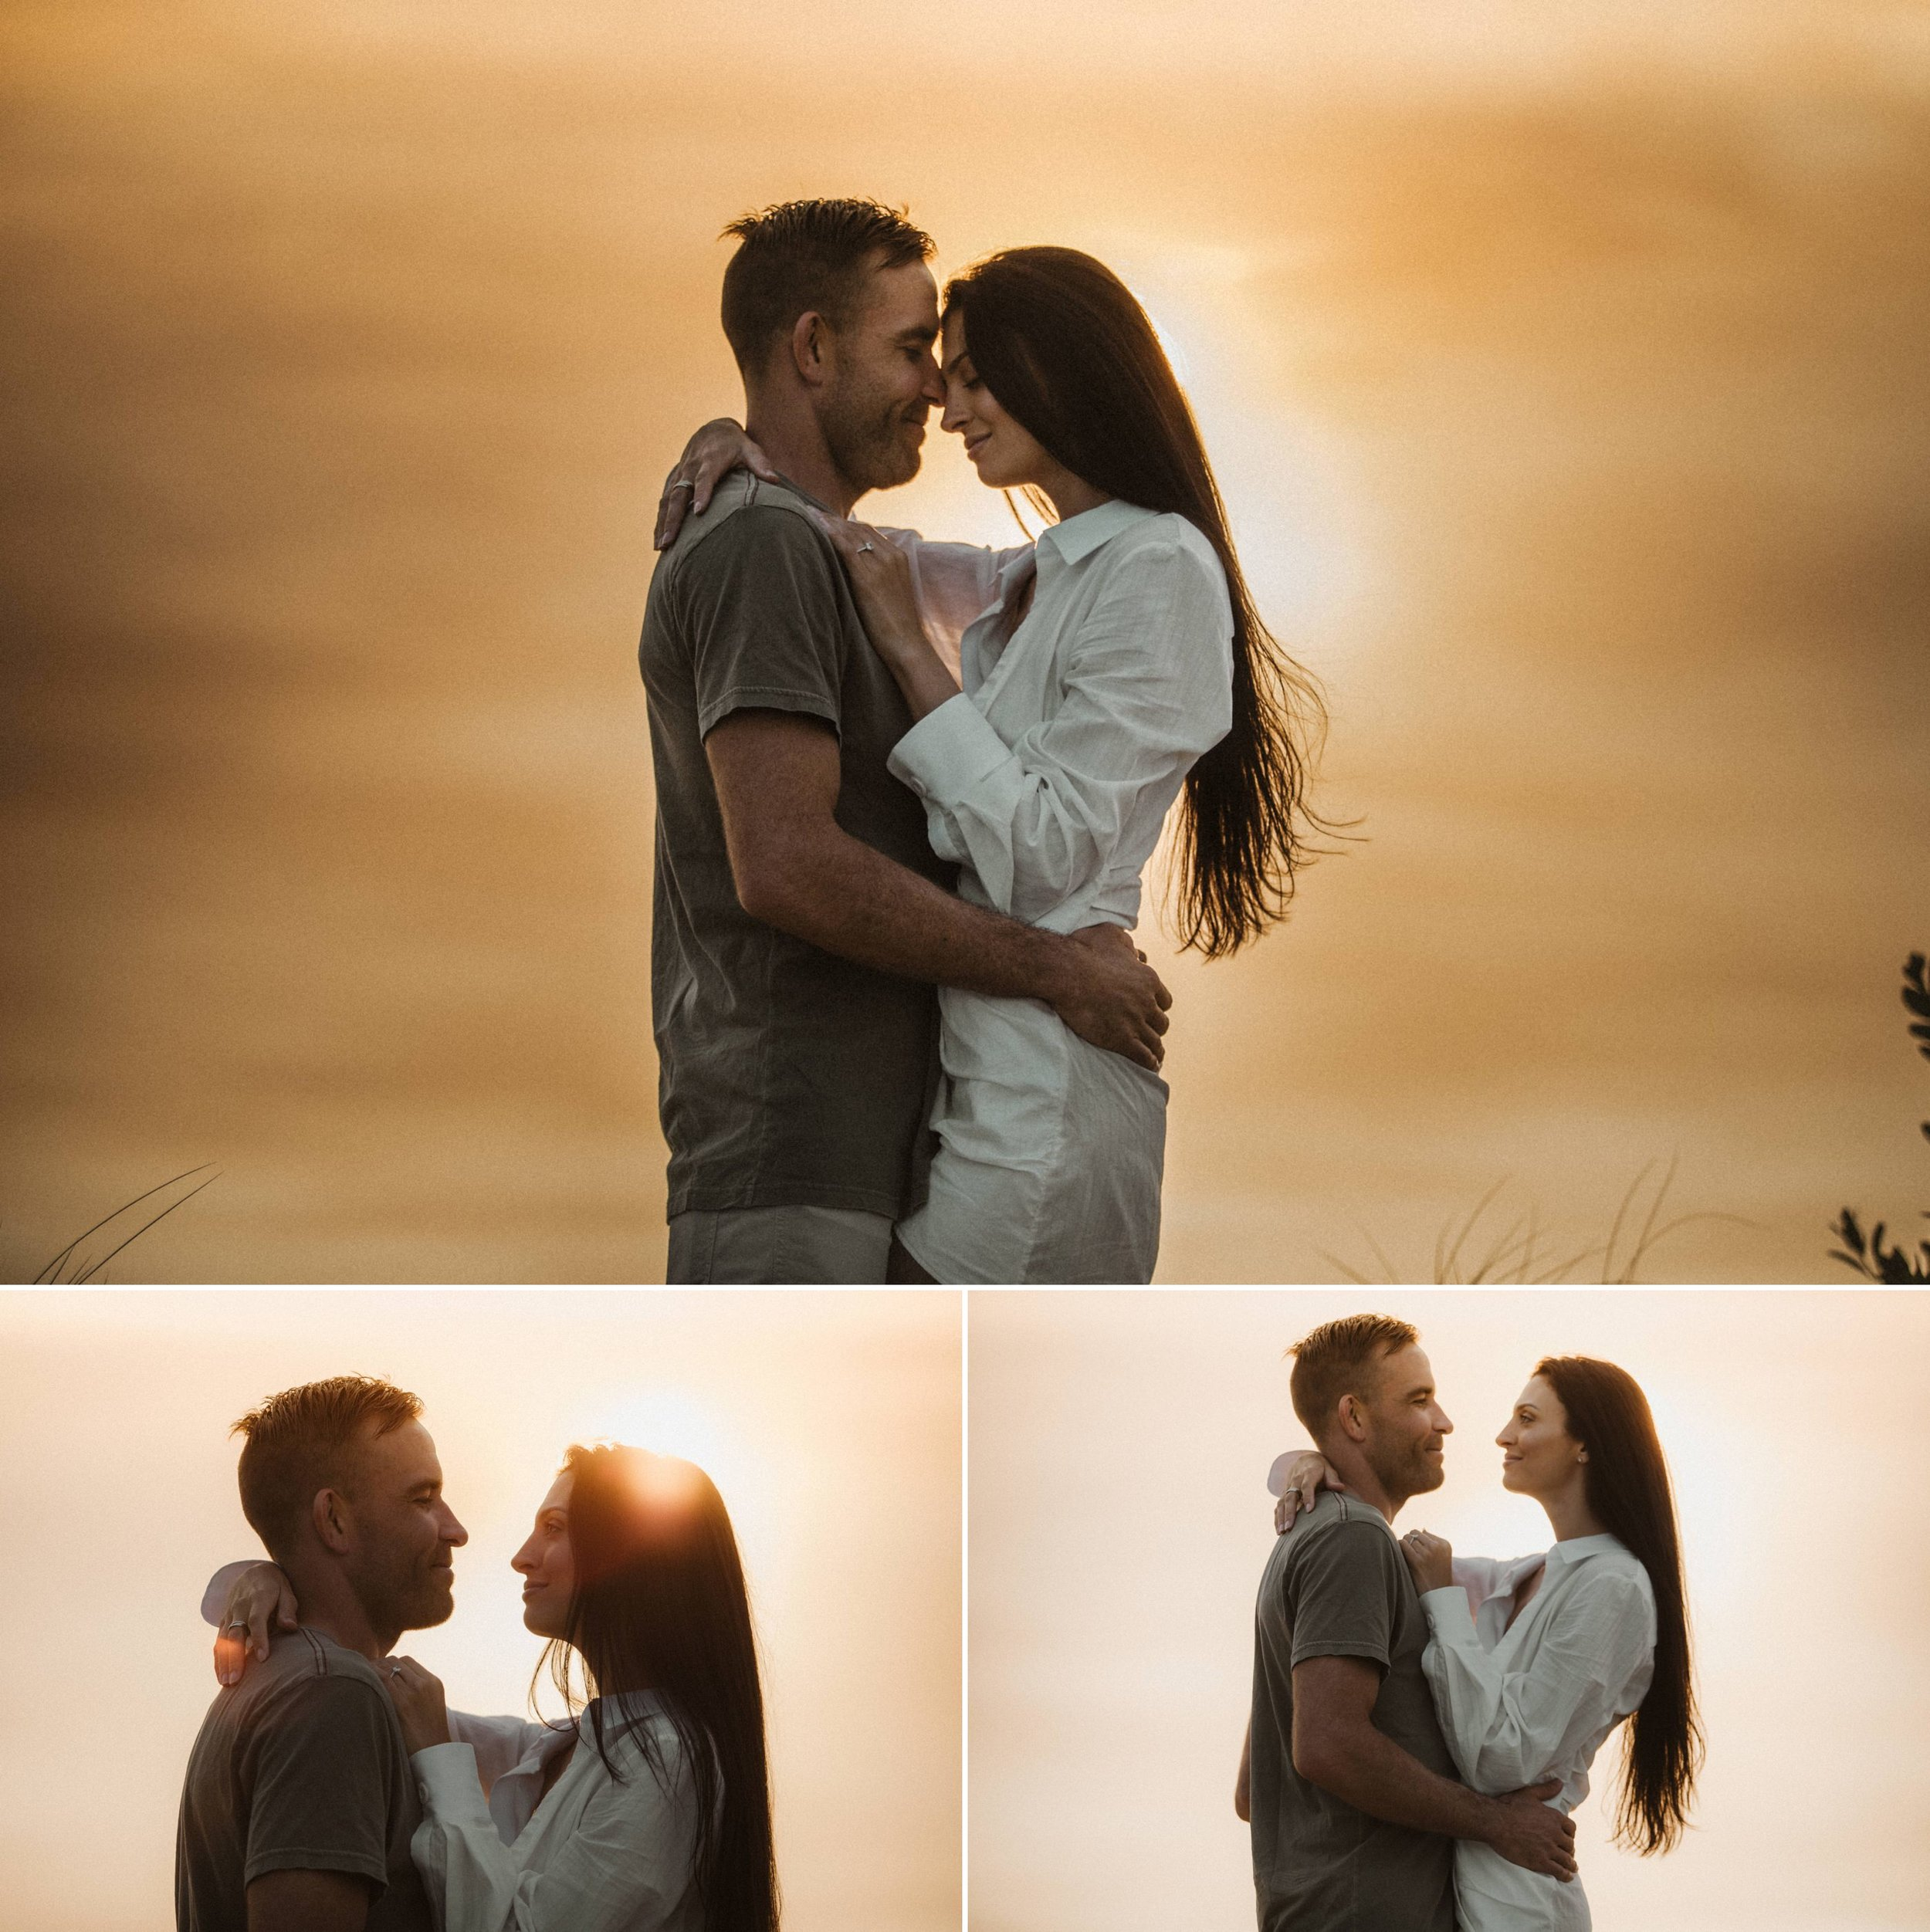 Adventure Brushfire sunset beach engagement- Gabriella + Chad- Shaina DeCiryan photography3.jpg